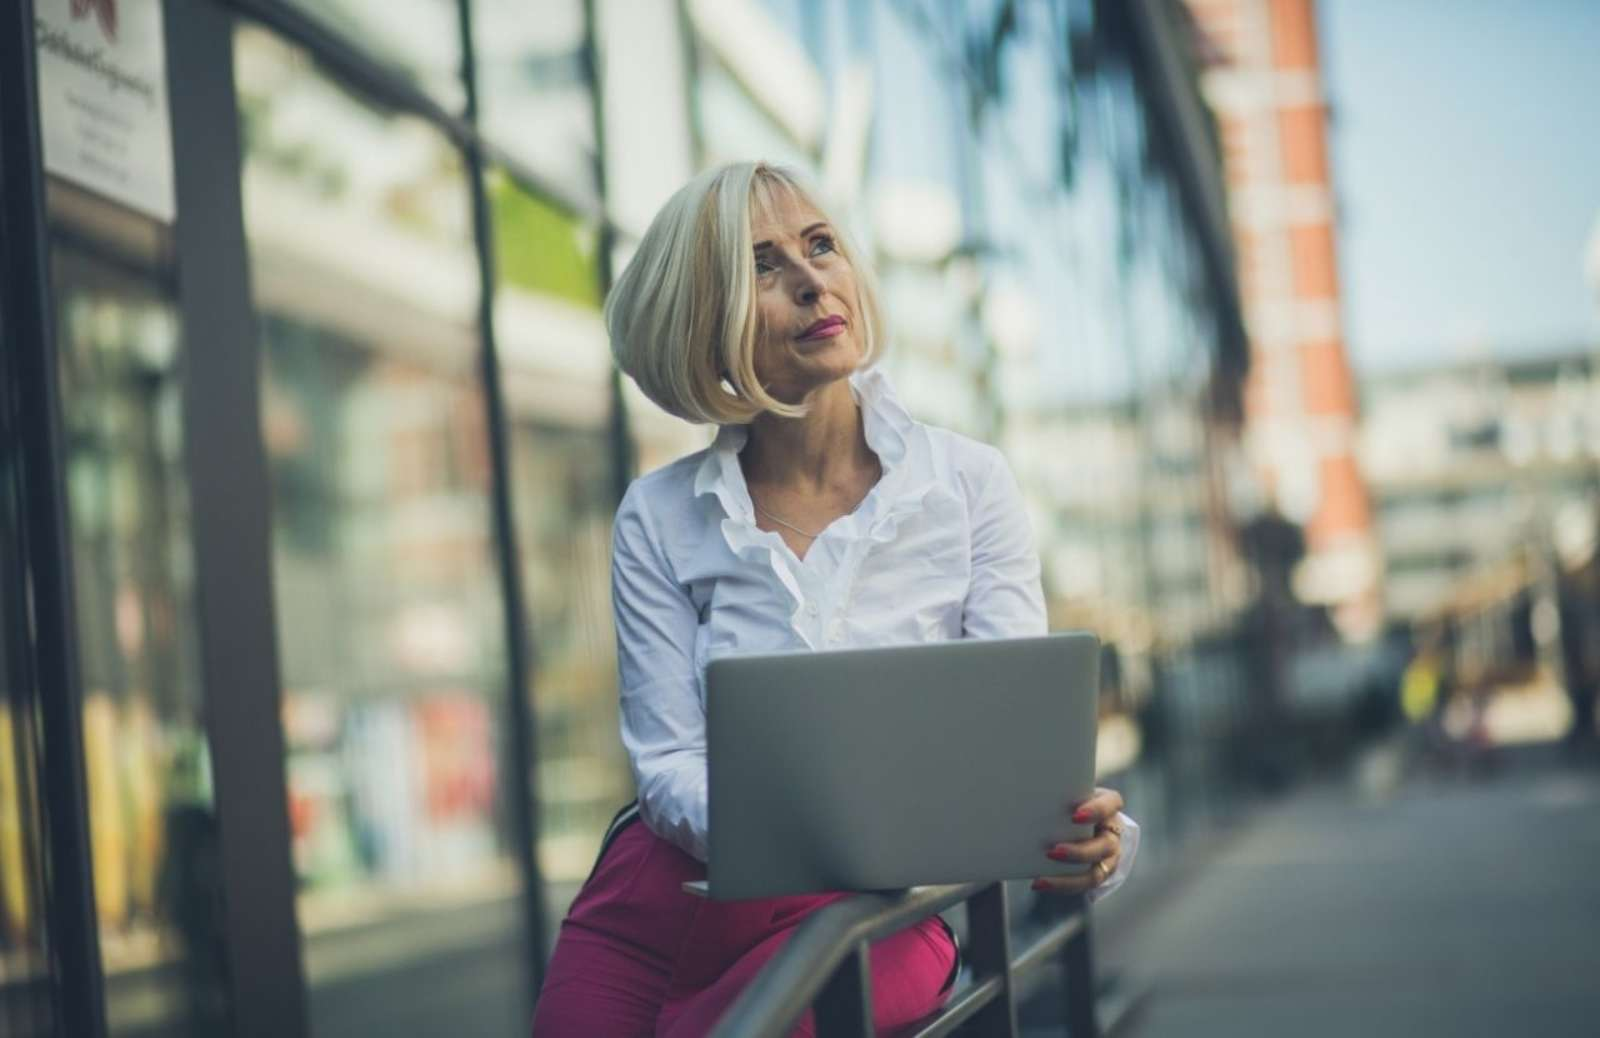 Woman sitting outside, holding laptop, looking off into distance